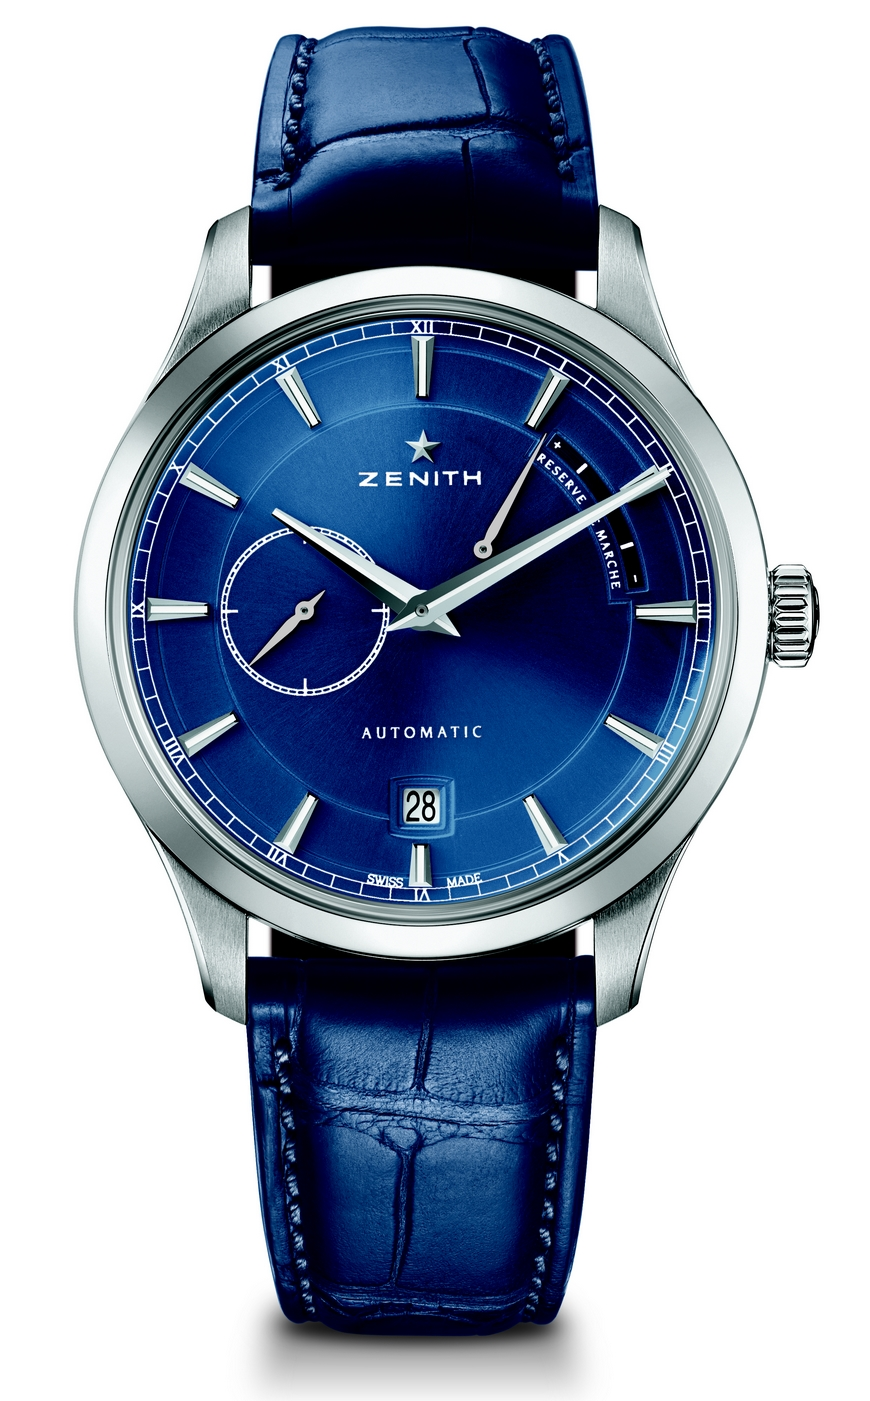 Zenith-elite-power-reserve-limited-95_2120_685_51_C700